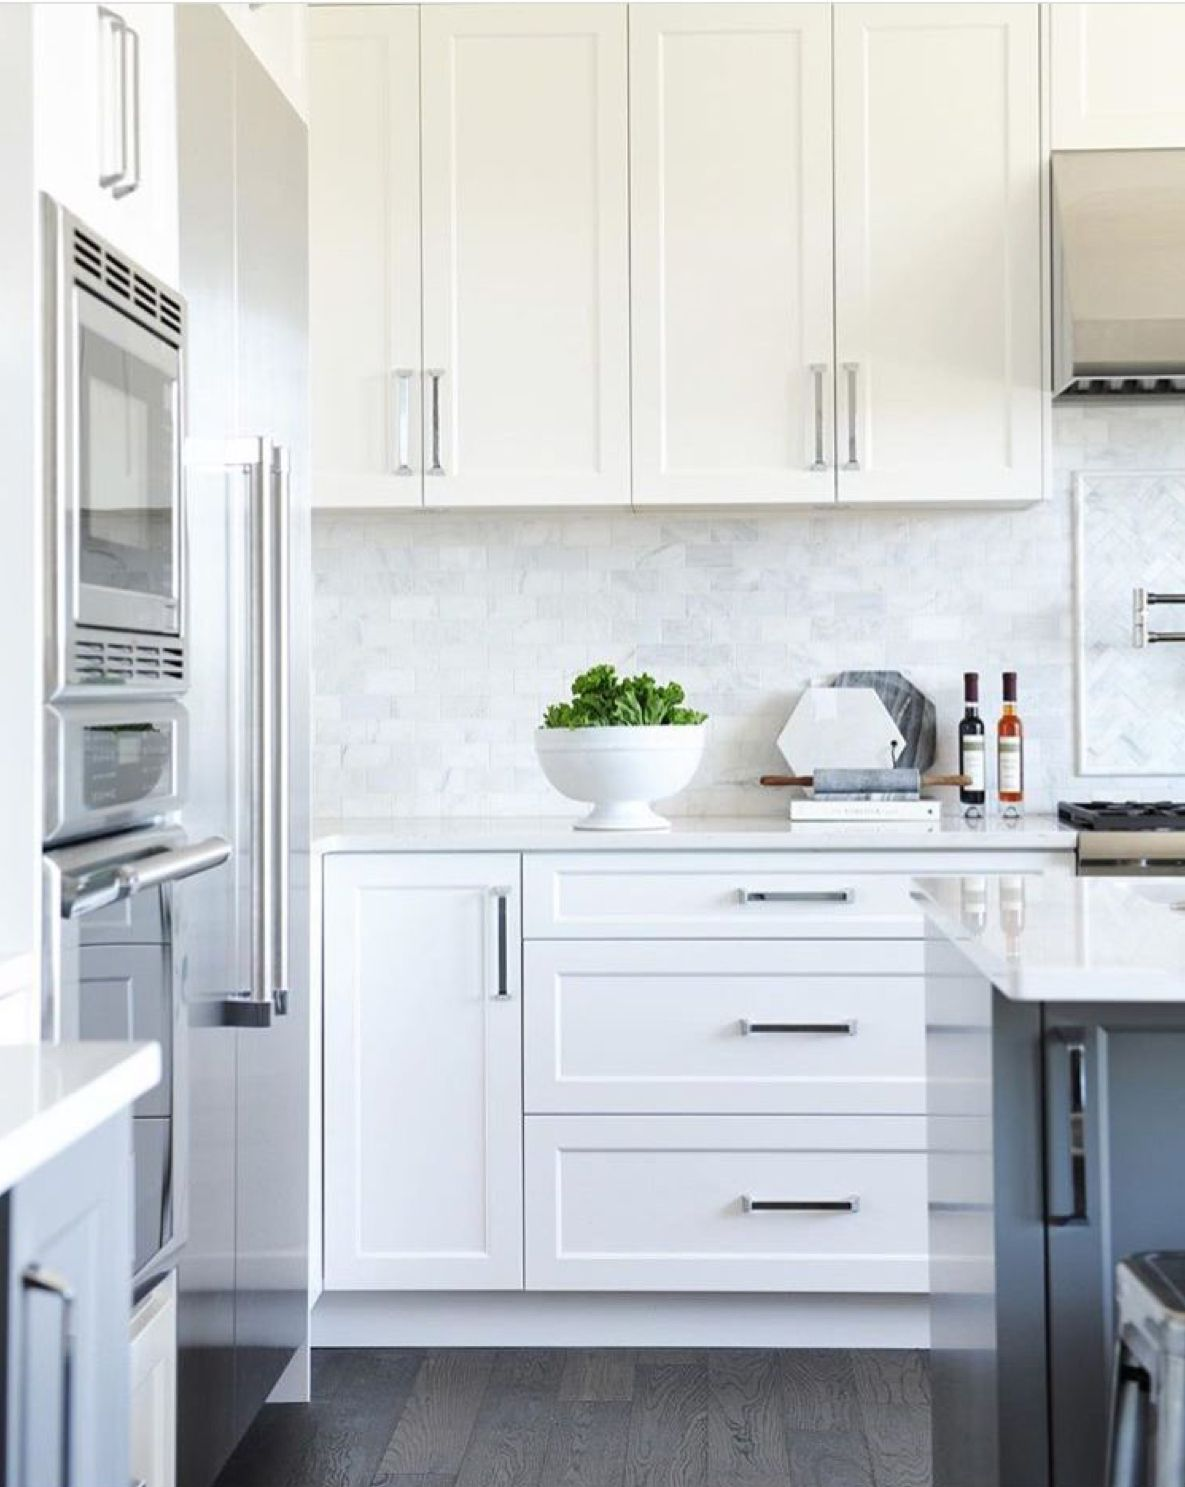 Download Wallpaper Can Kitchen Cabinets Be Too White